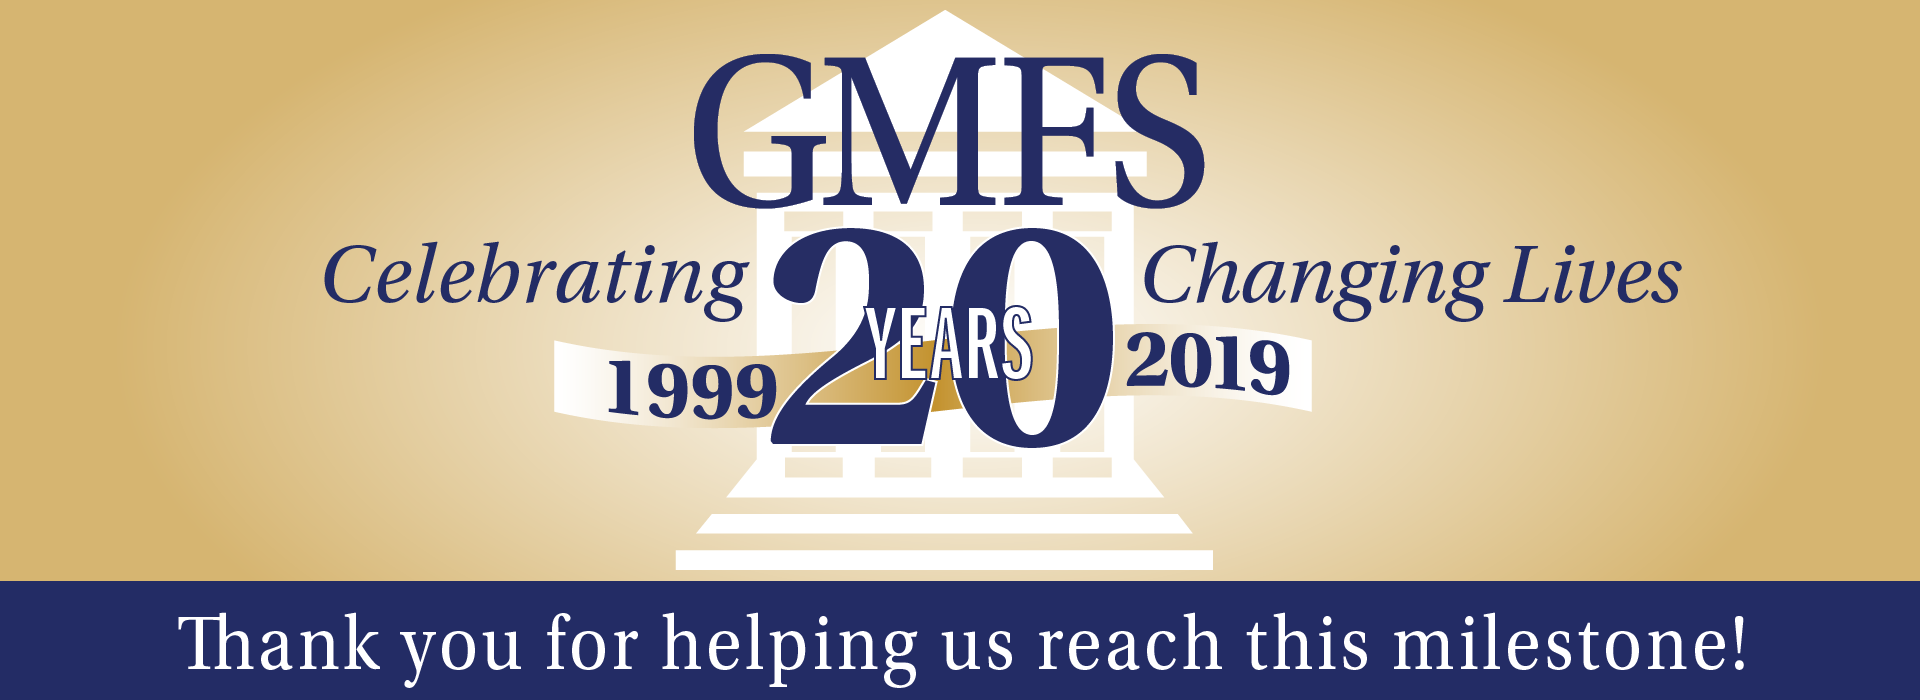 GMFS - Celebrating 20 Years of Changing Lives!